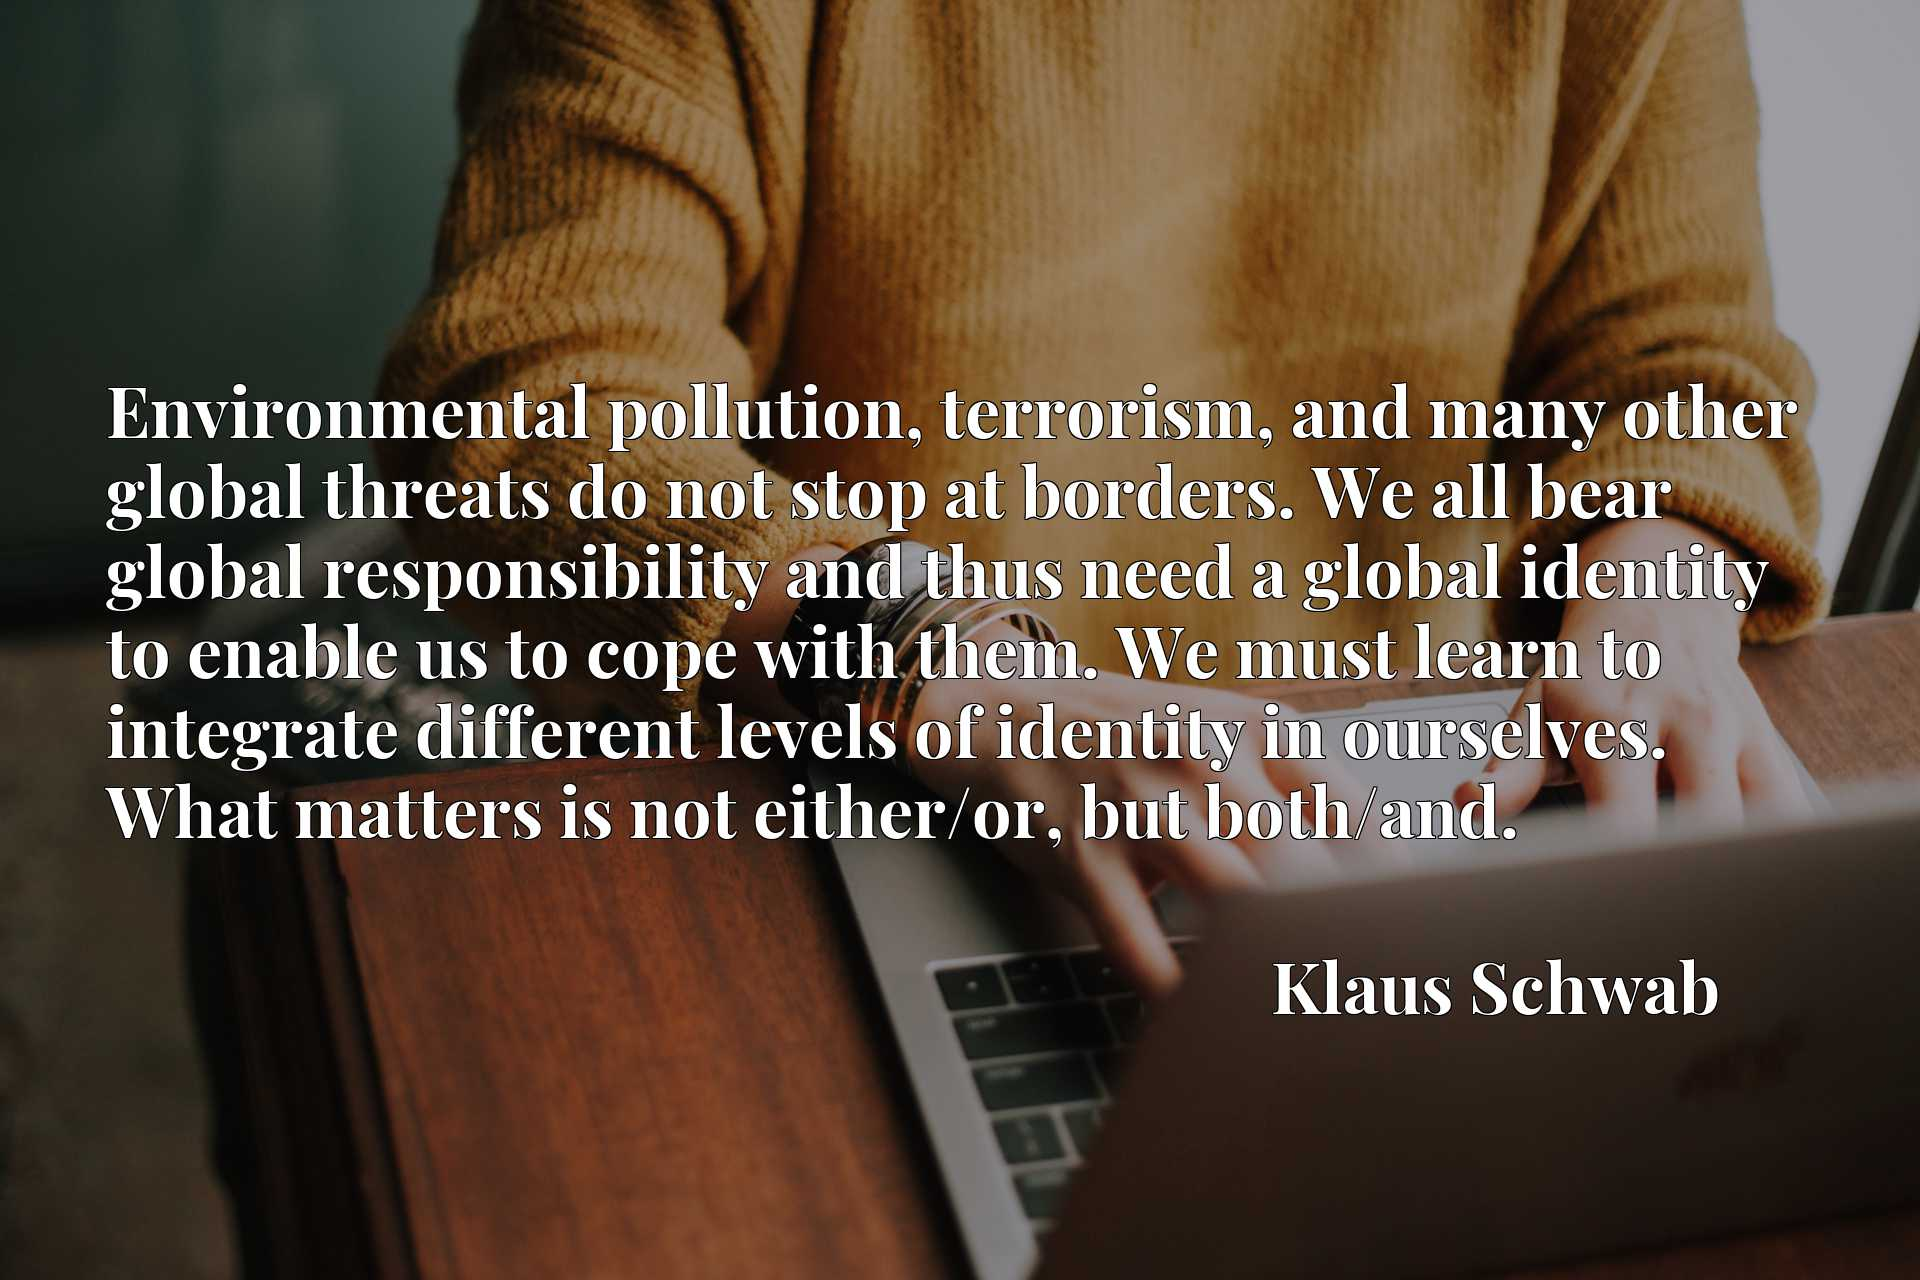 Environmental pollution, terrorism, and many other global threats do not stop at borders. We all bear global responsibility and thus need a global identity to enable us to cope with them. We must learn to integrate different levels of identity in ourselves. What matters is not either/or, but both/and.